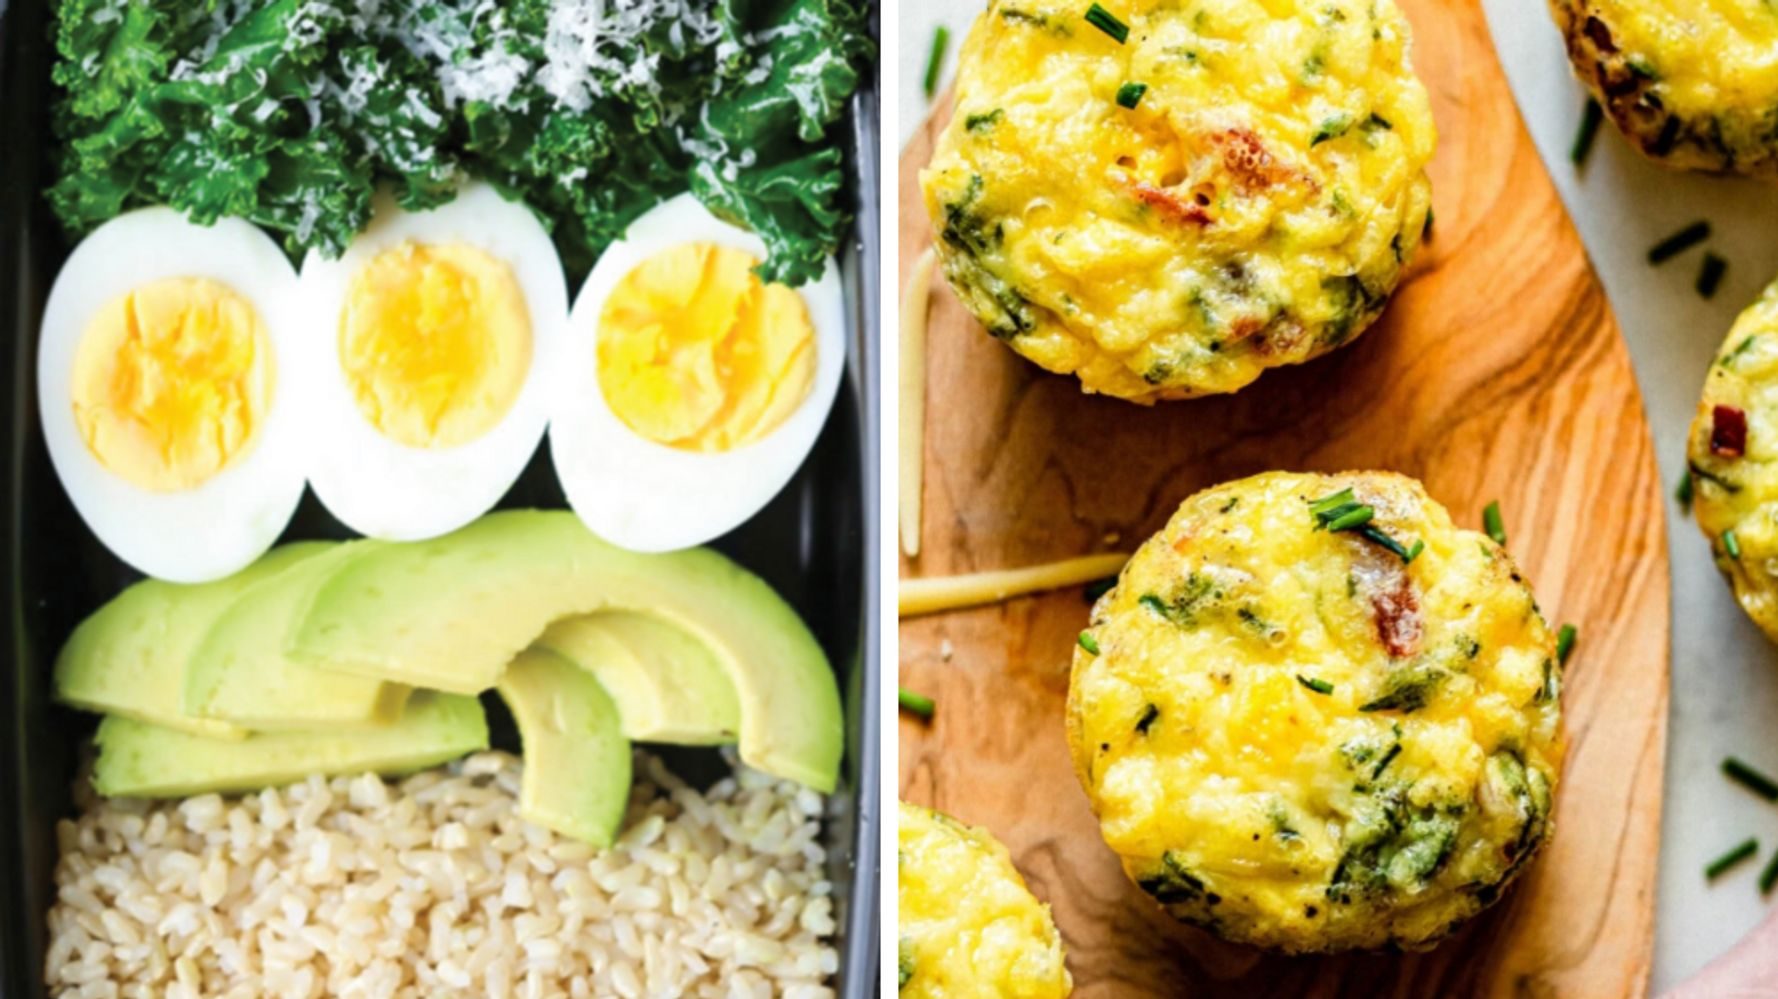 Easy Make-Ahead Breakfast Recipes For Busy Mornings